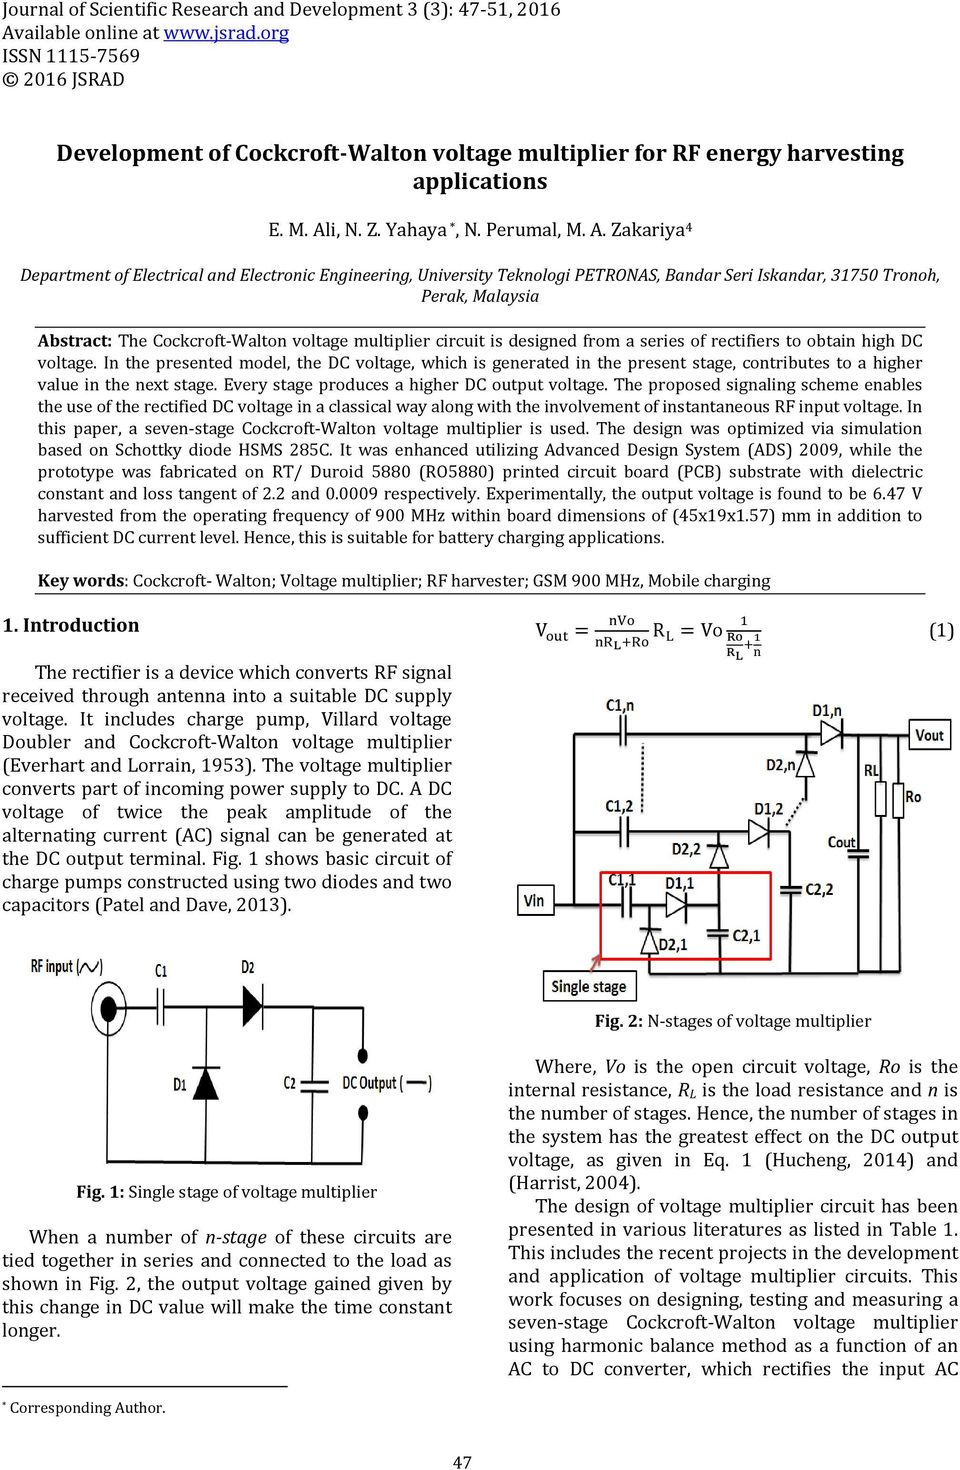 Development Of Cockcroft Walton Voltage Multiplier For Rf Energy Circuit On Dc High Harvesting Applications